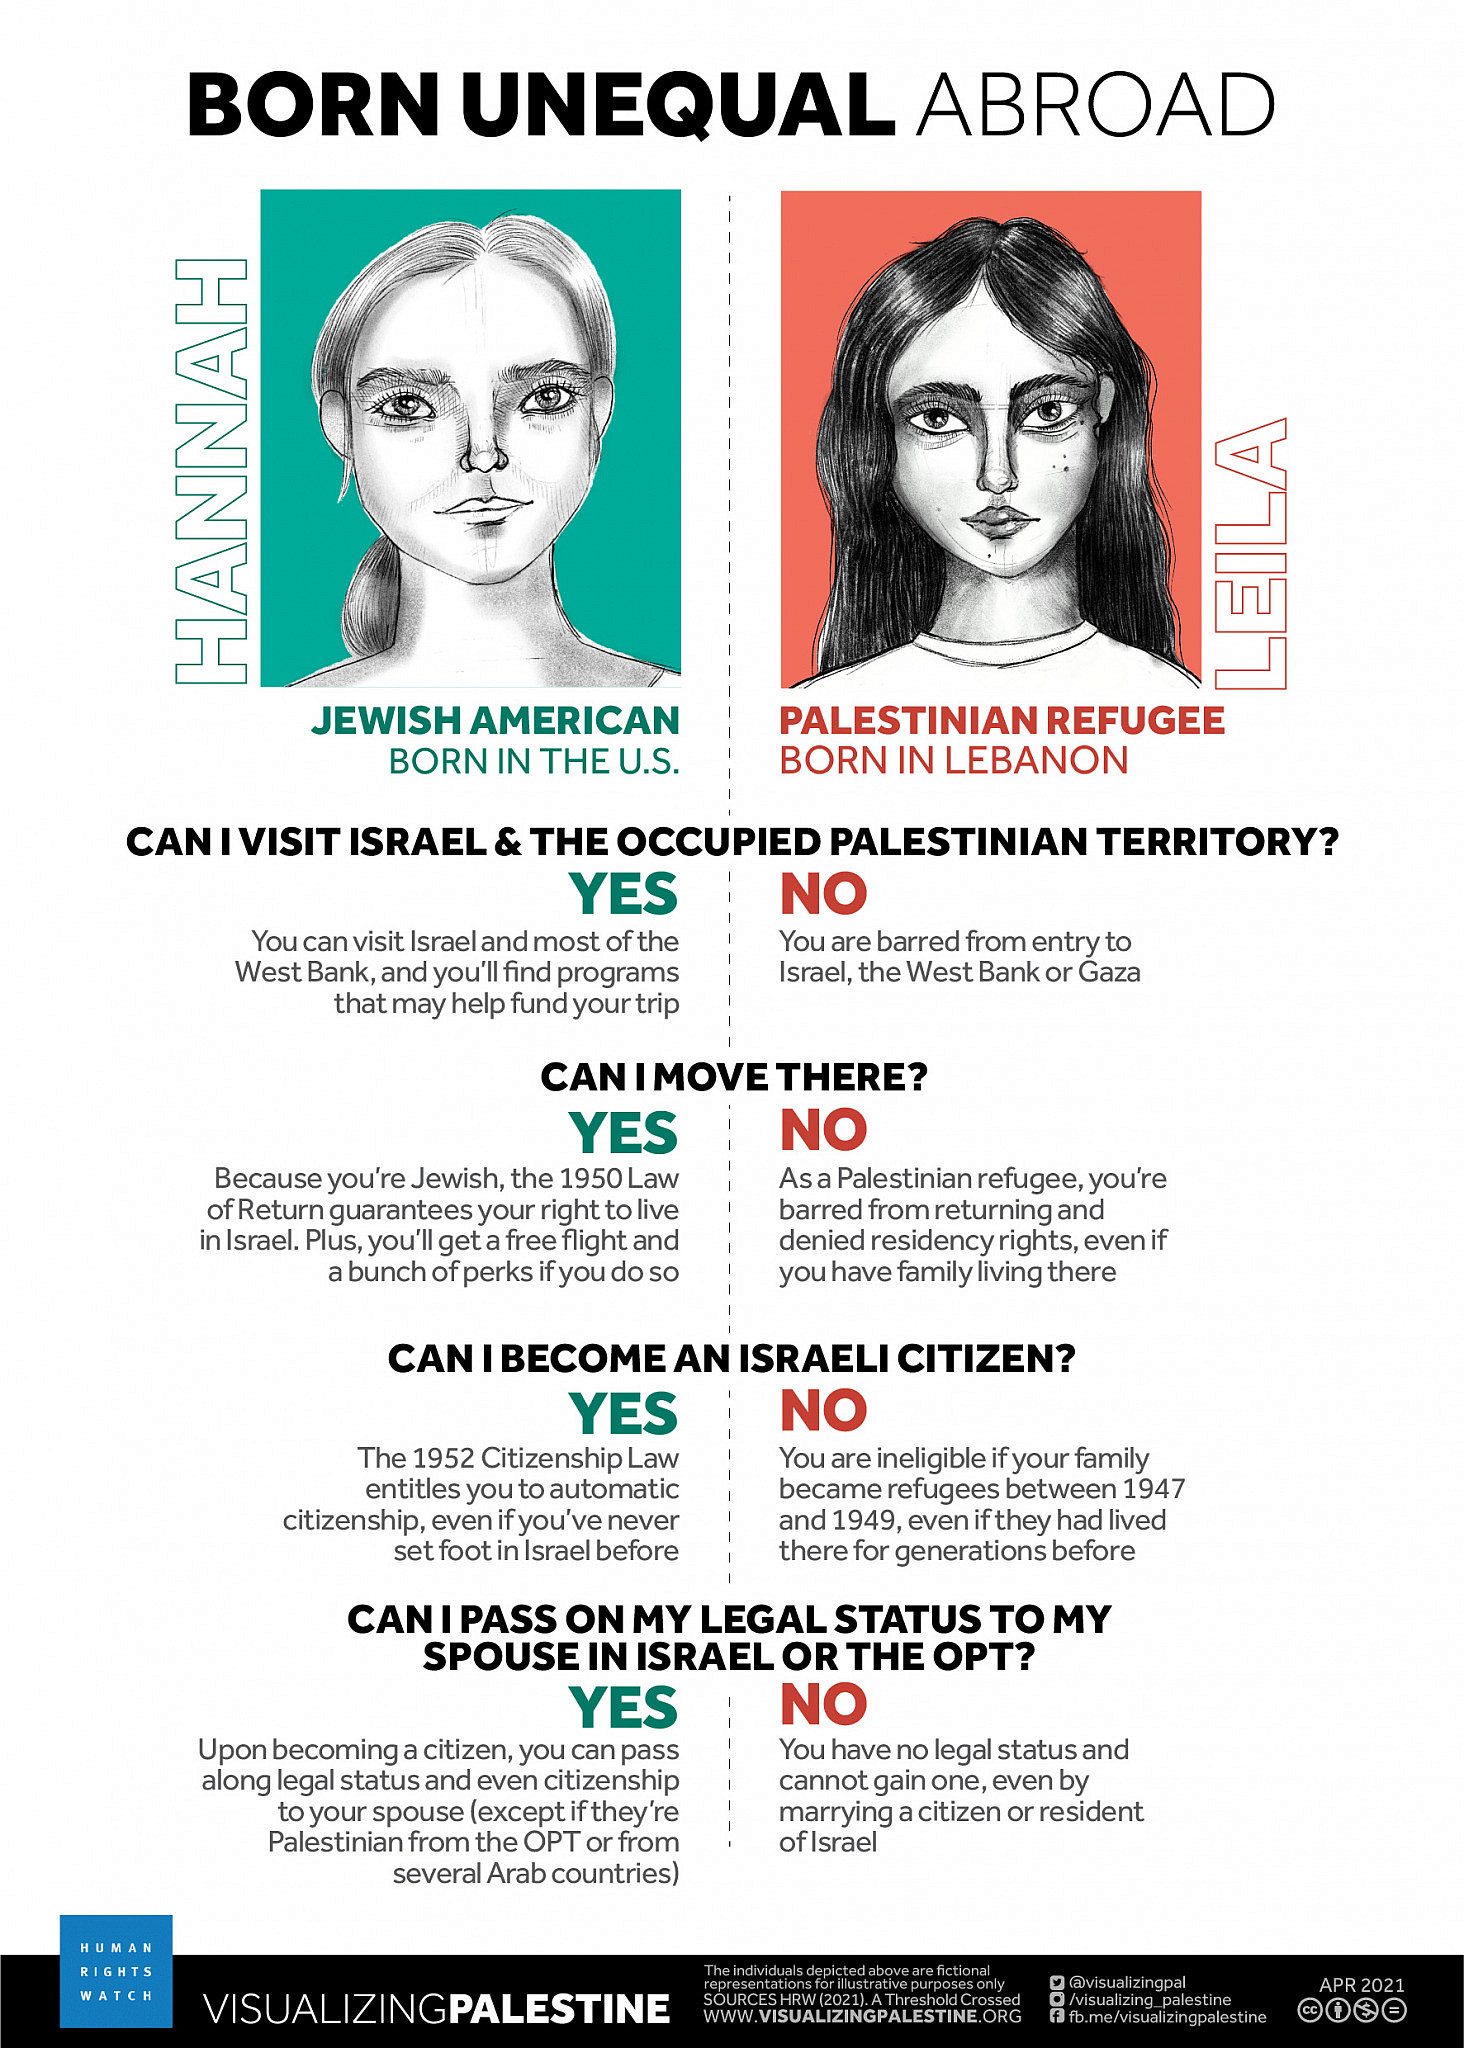 Graphic by Visualizing Palestine and Human Right Watch illustrating the different rights between Jews and Palestinians in the diaspora, accompanying an HRW report charging Israel with apartheid and persecution. (Courtesy of HRW)